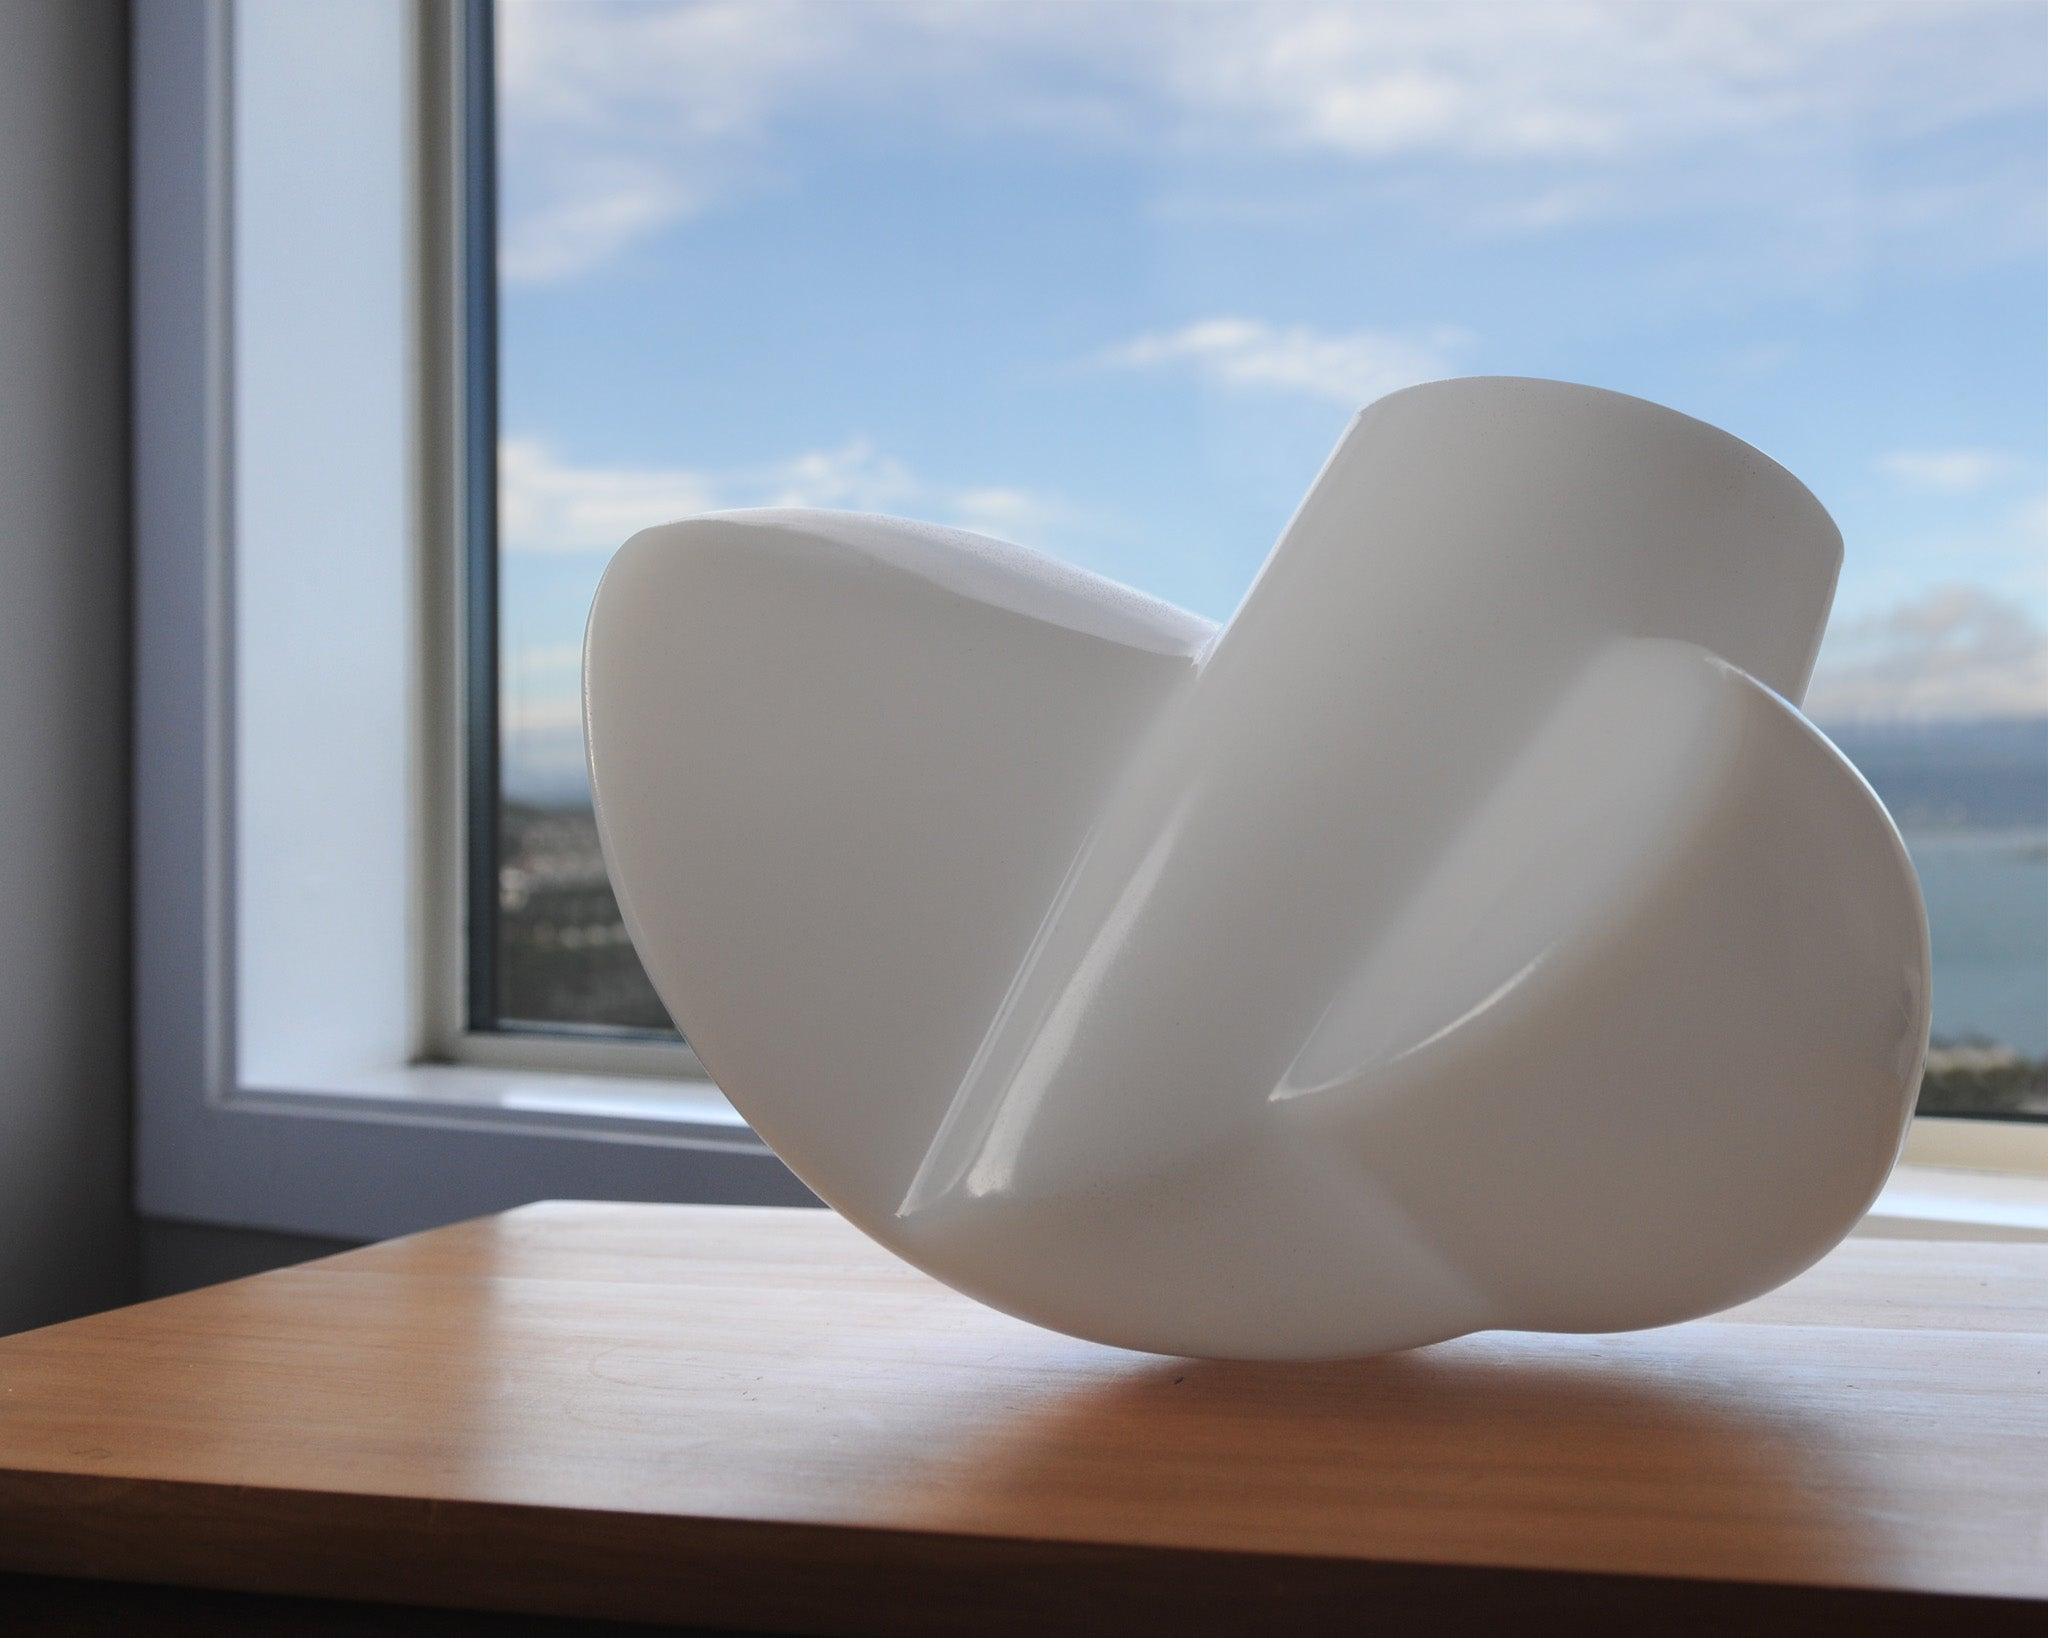 Molded plastic lamp sculpture by Stephen Williams.